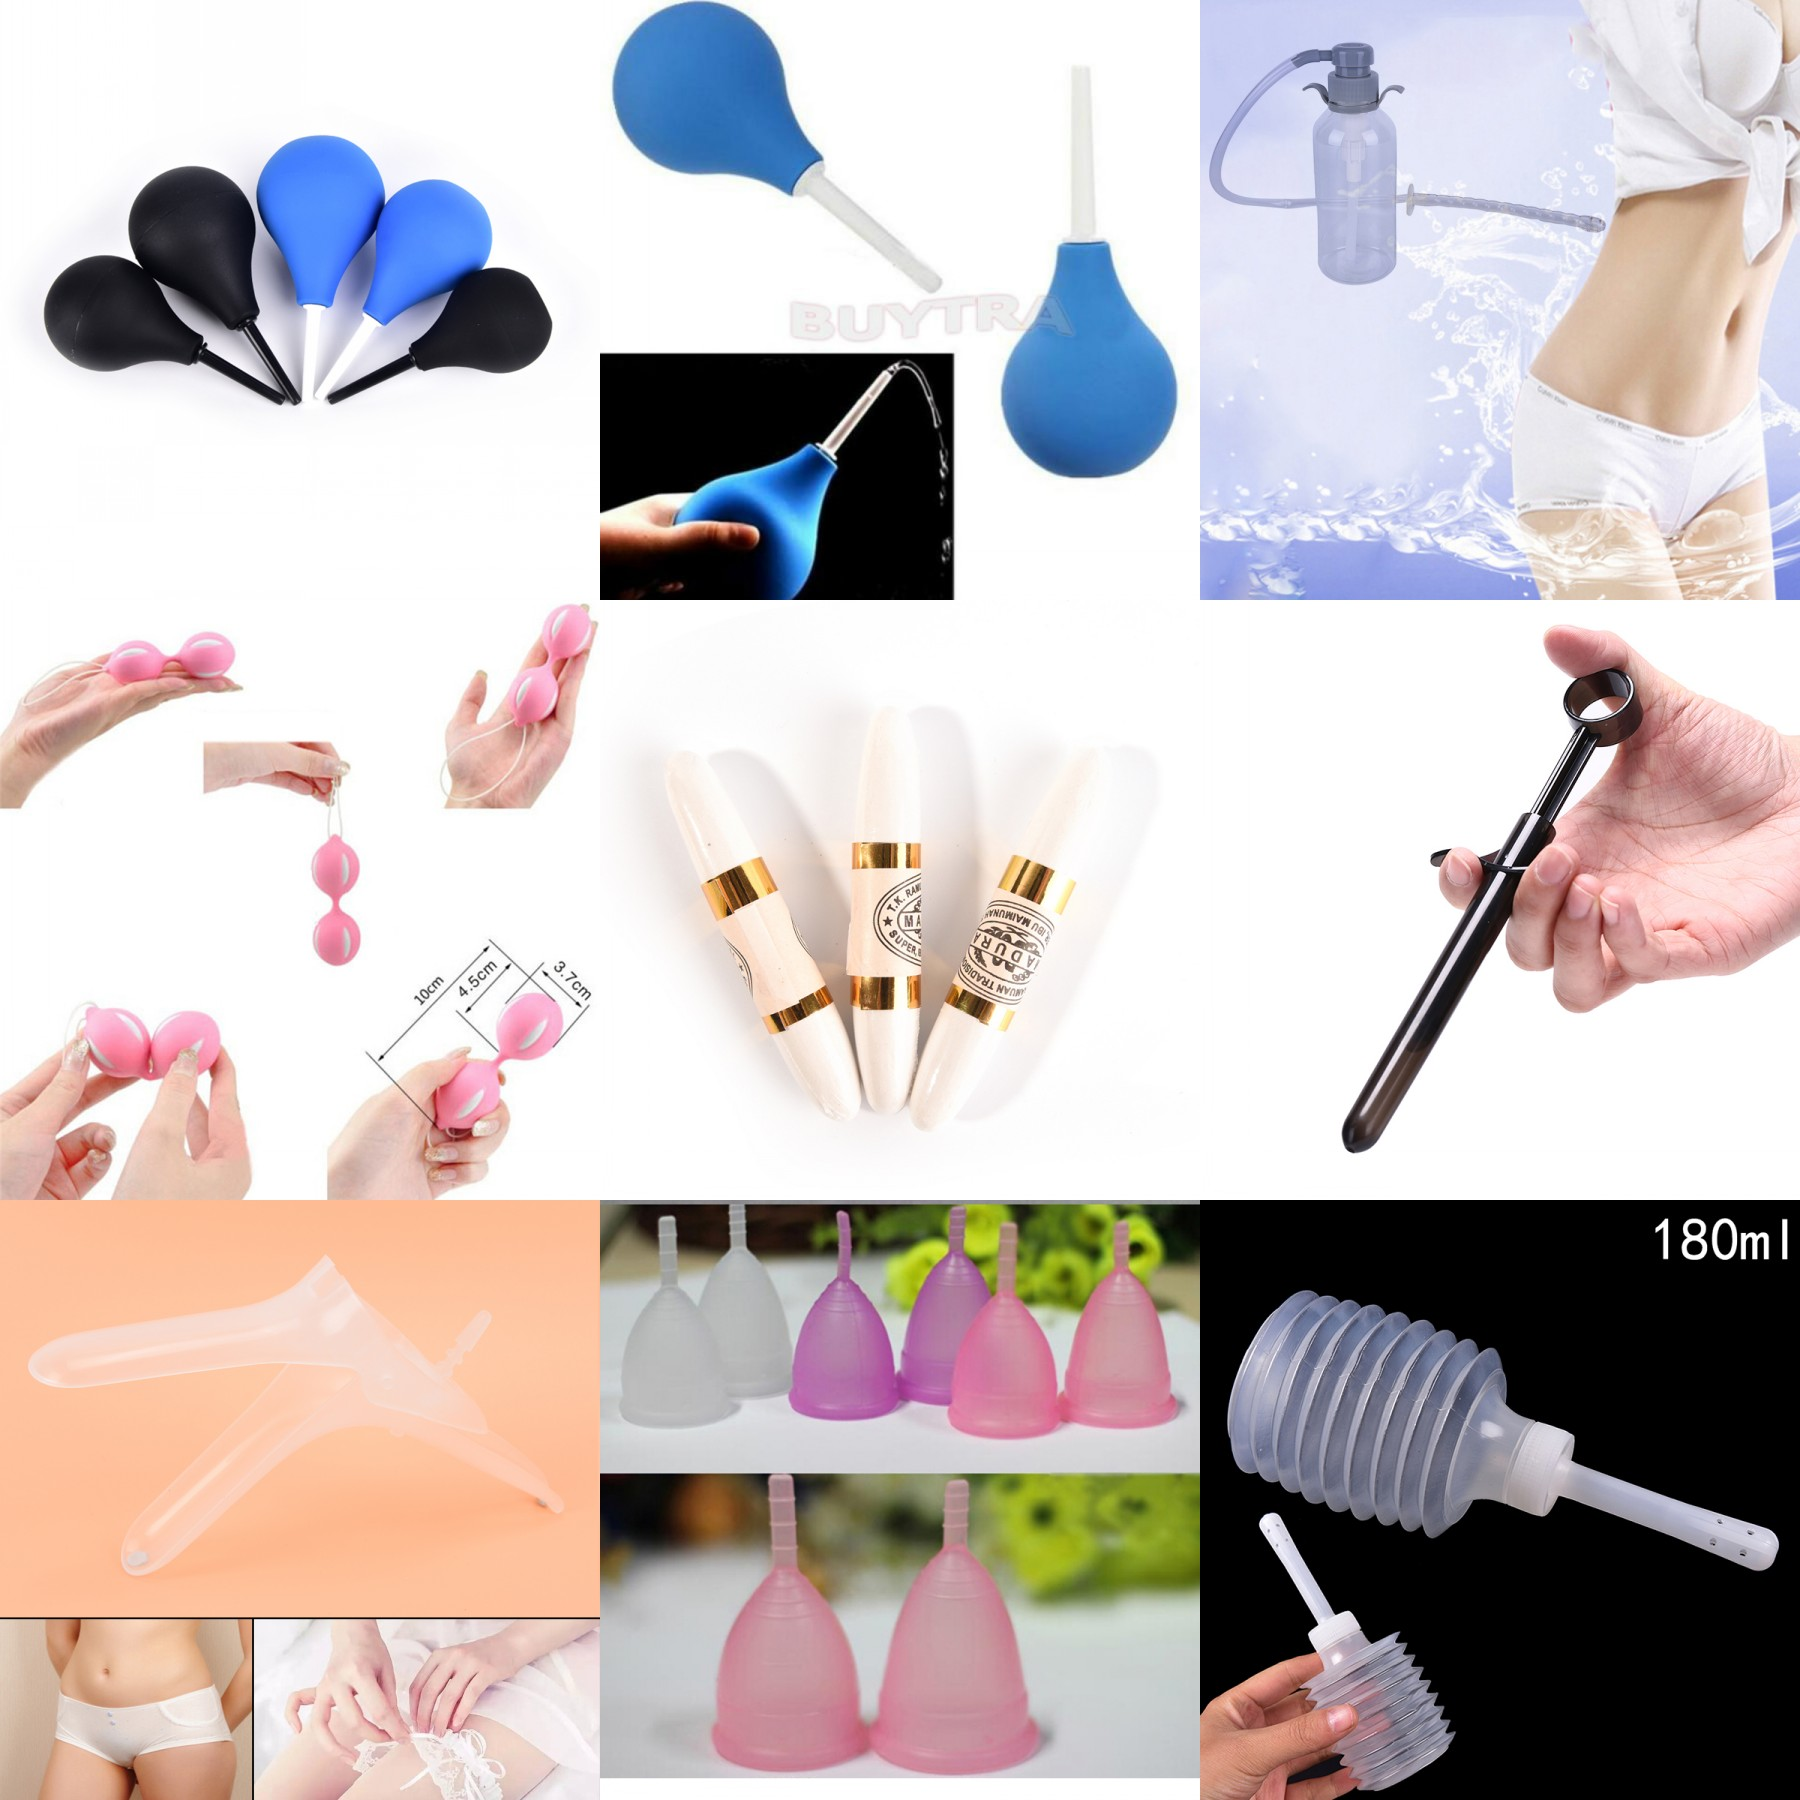 Medical Anal Cleaner Enema Cleaning Container Vagina Cleaner Douche Enema Bulb Women Men Rubber Health Hygiene Tool